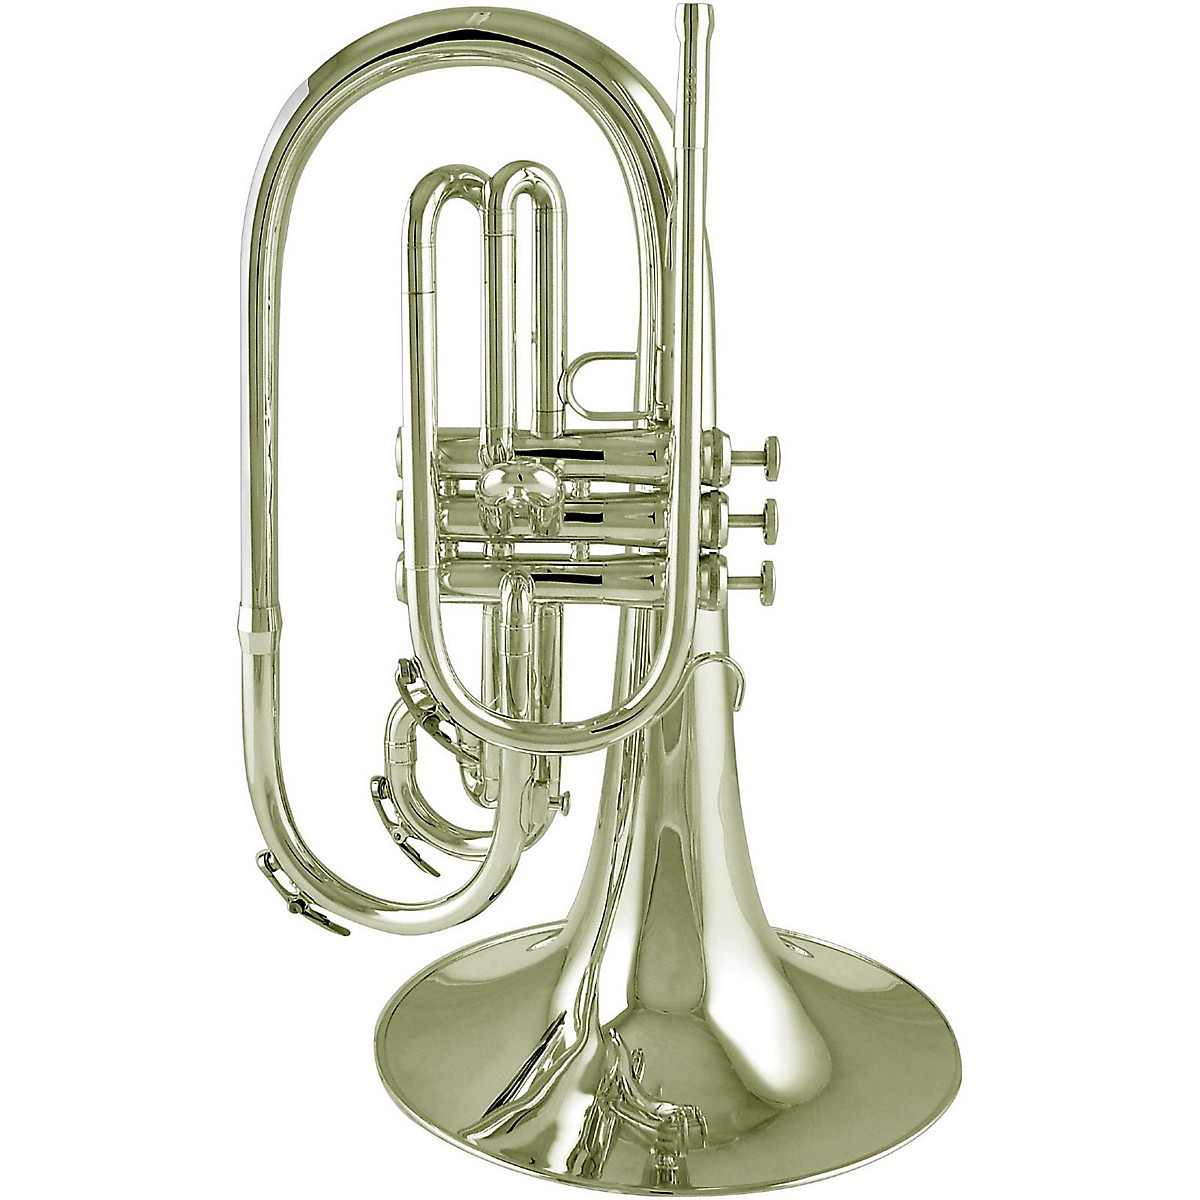 King K20 Series Marching F Mellophone